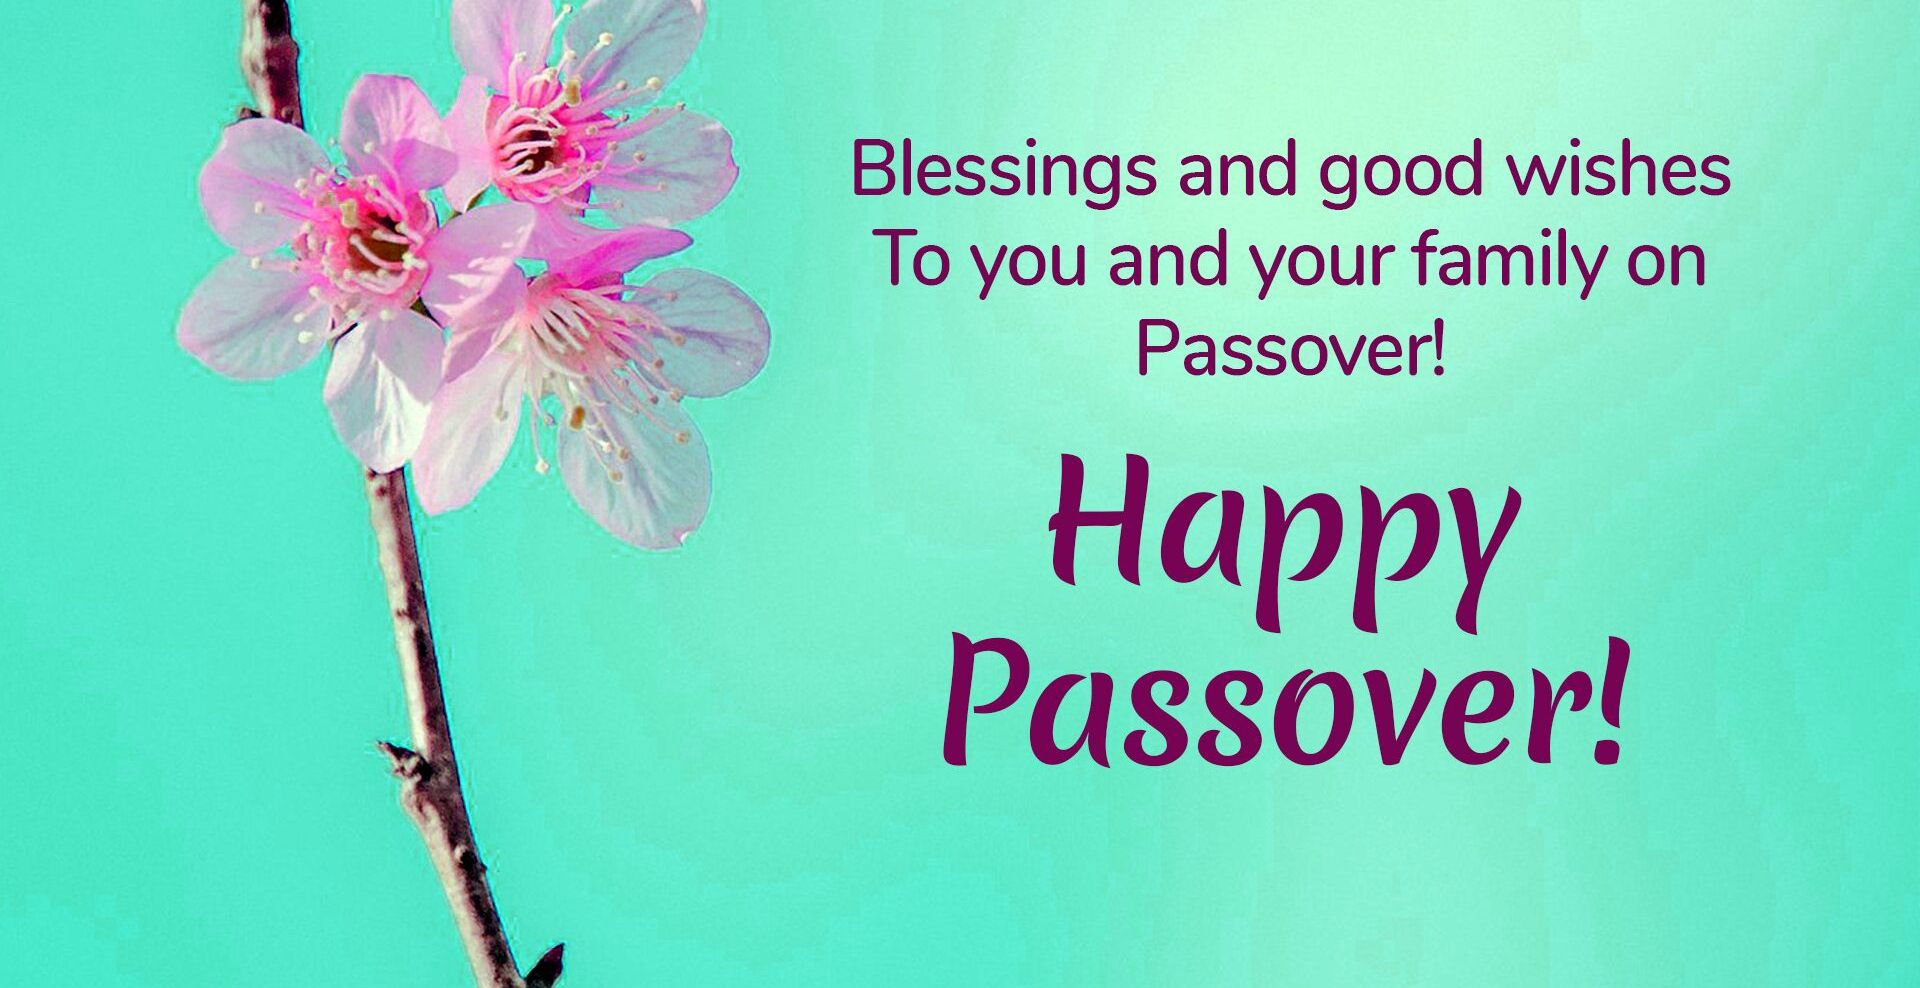 Happy Passover Wishes Greetings